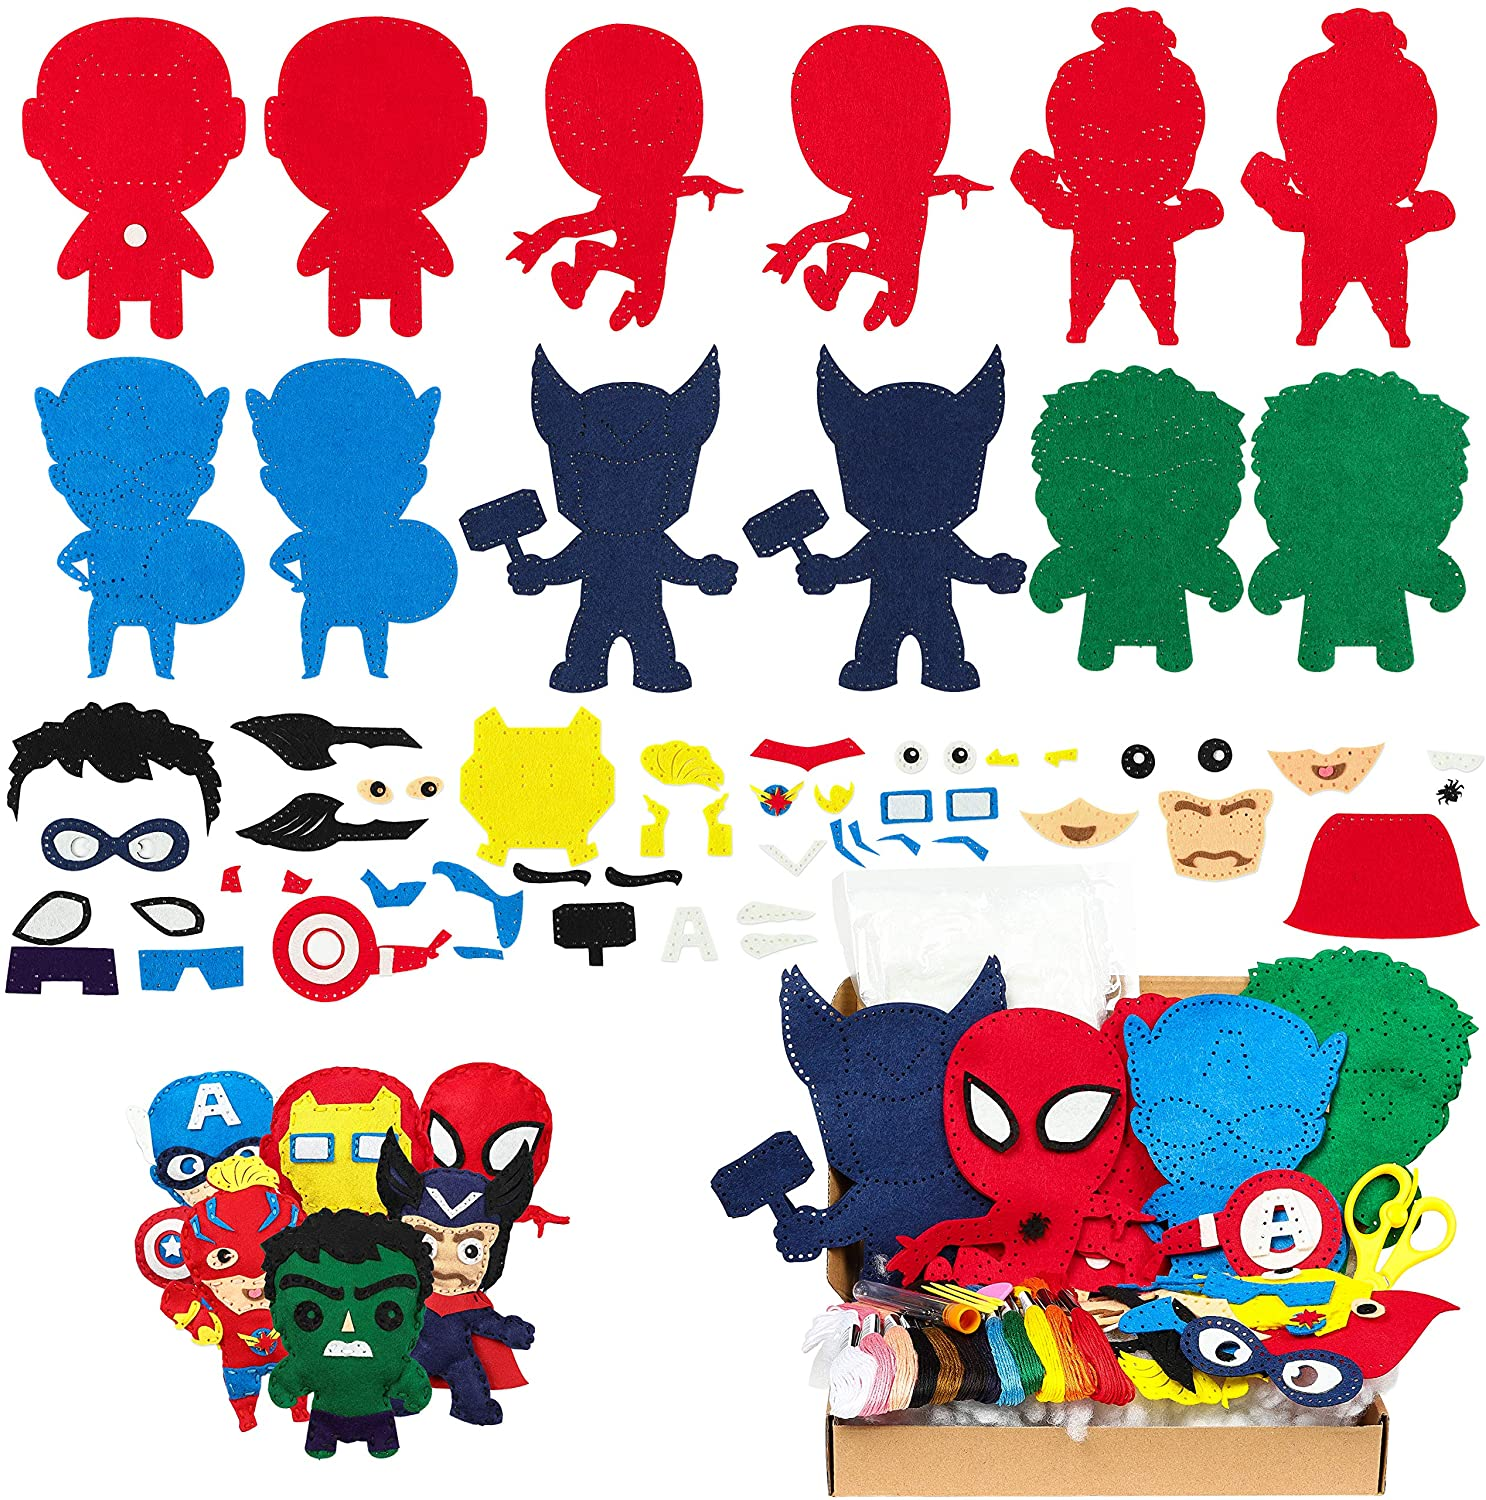 MALLMALL6 6Pcs Superhero Sewing Kit DIY Art Craft Felt Kits for Kids Learn to Sew Crafts Supplies Handmade Stuffed Cartoon Toys Hero League Themed Stitch Craft Art Project for Beginners Boys Girls